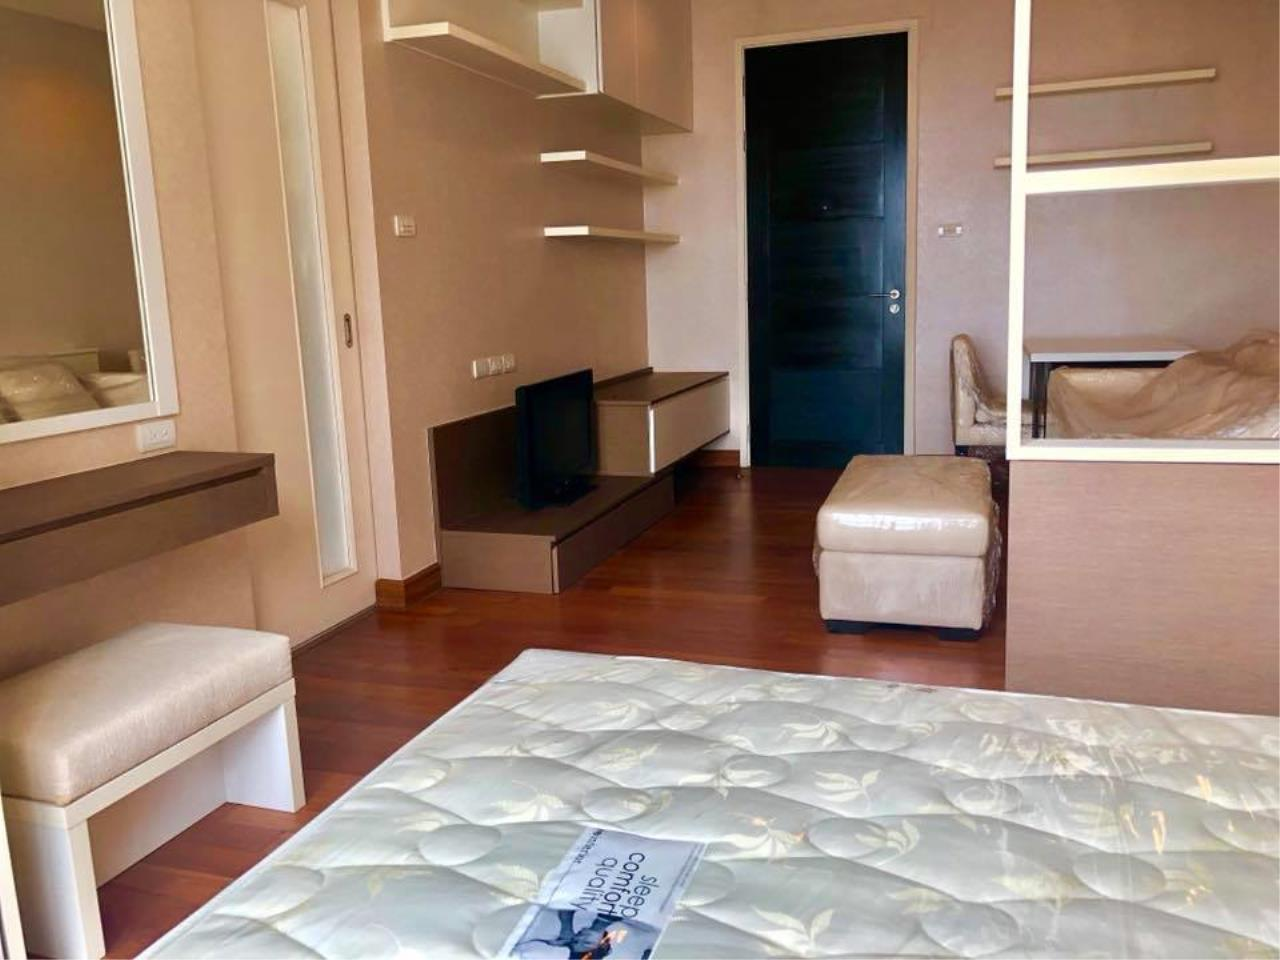 Quality Life Property Agency's S A L E !! || IVY SATHORN 10|| 1BR 33.64 Sq.m. NEW UNIT!! 8